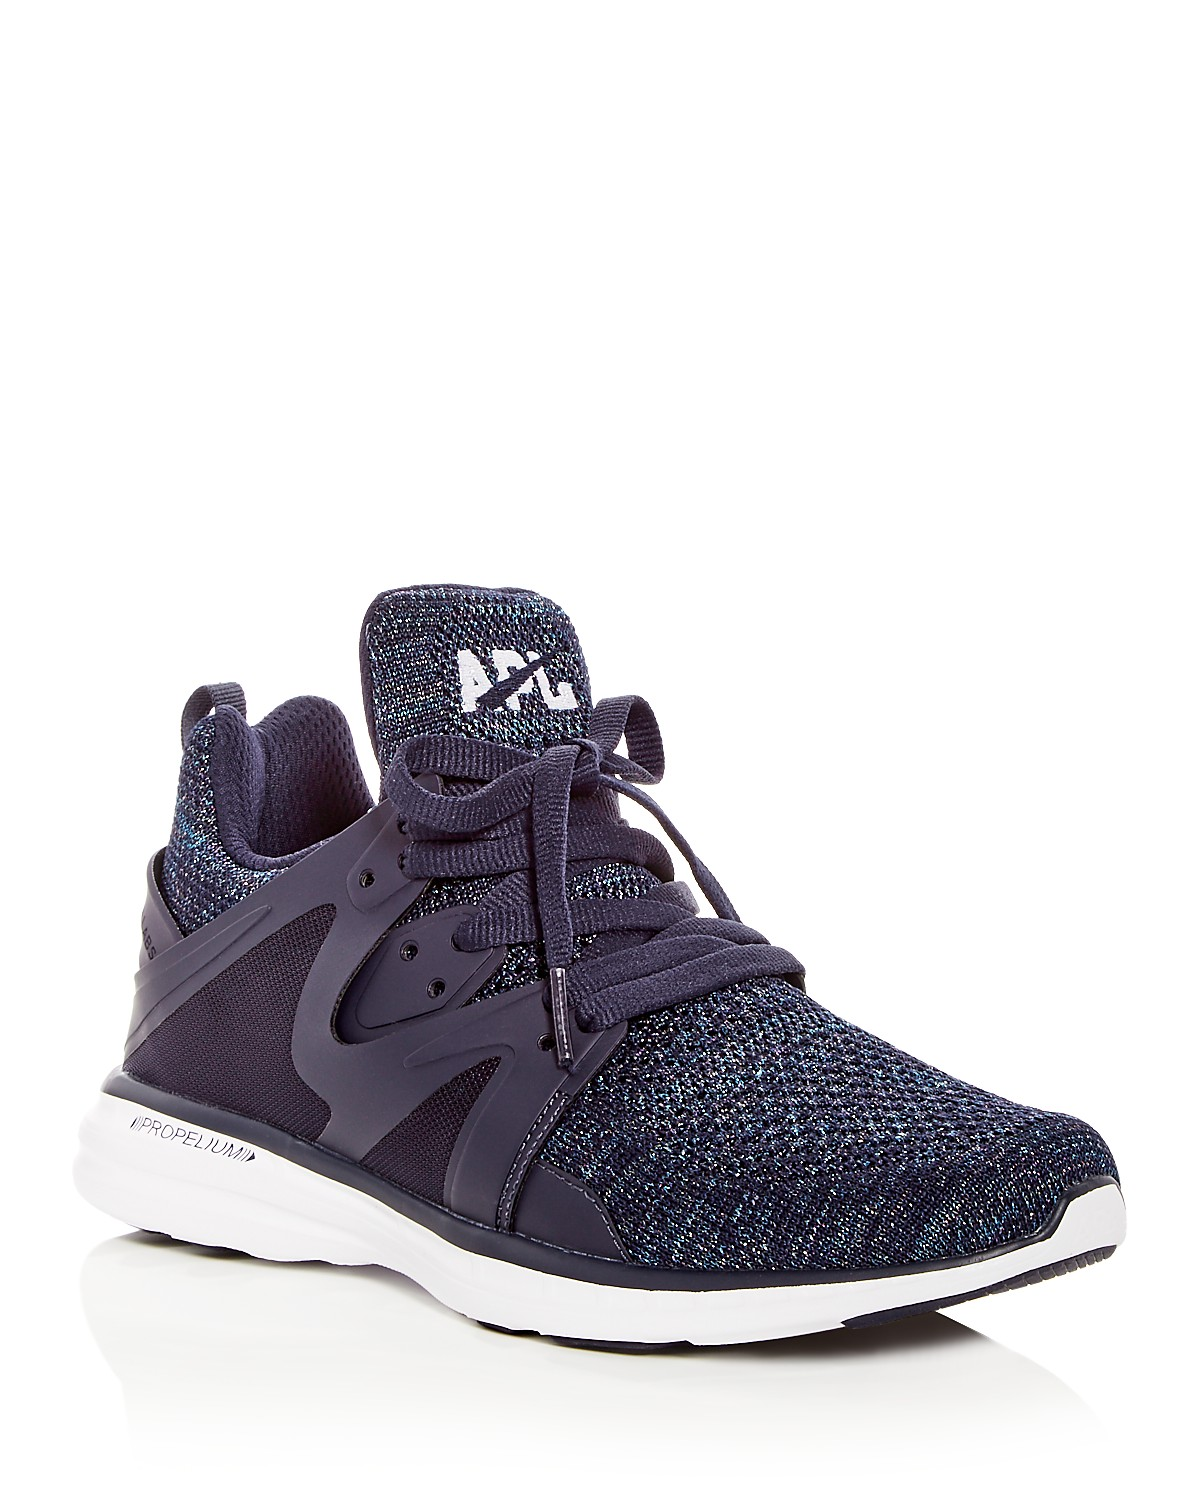 APL Athletic Propulsion Labs Women's Ascend Knit Lace Up Sneakers euFAfbF5